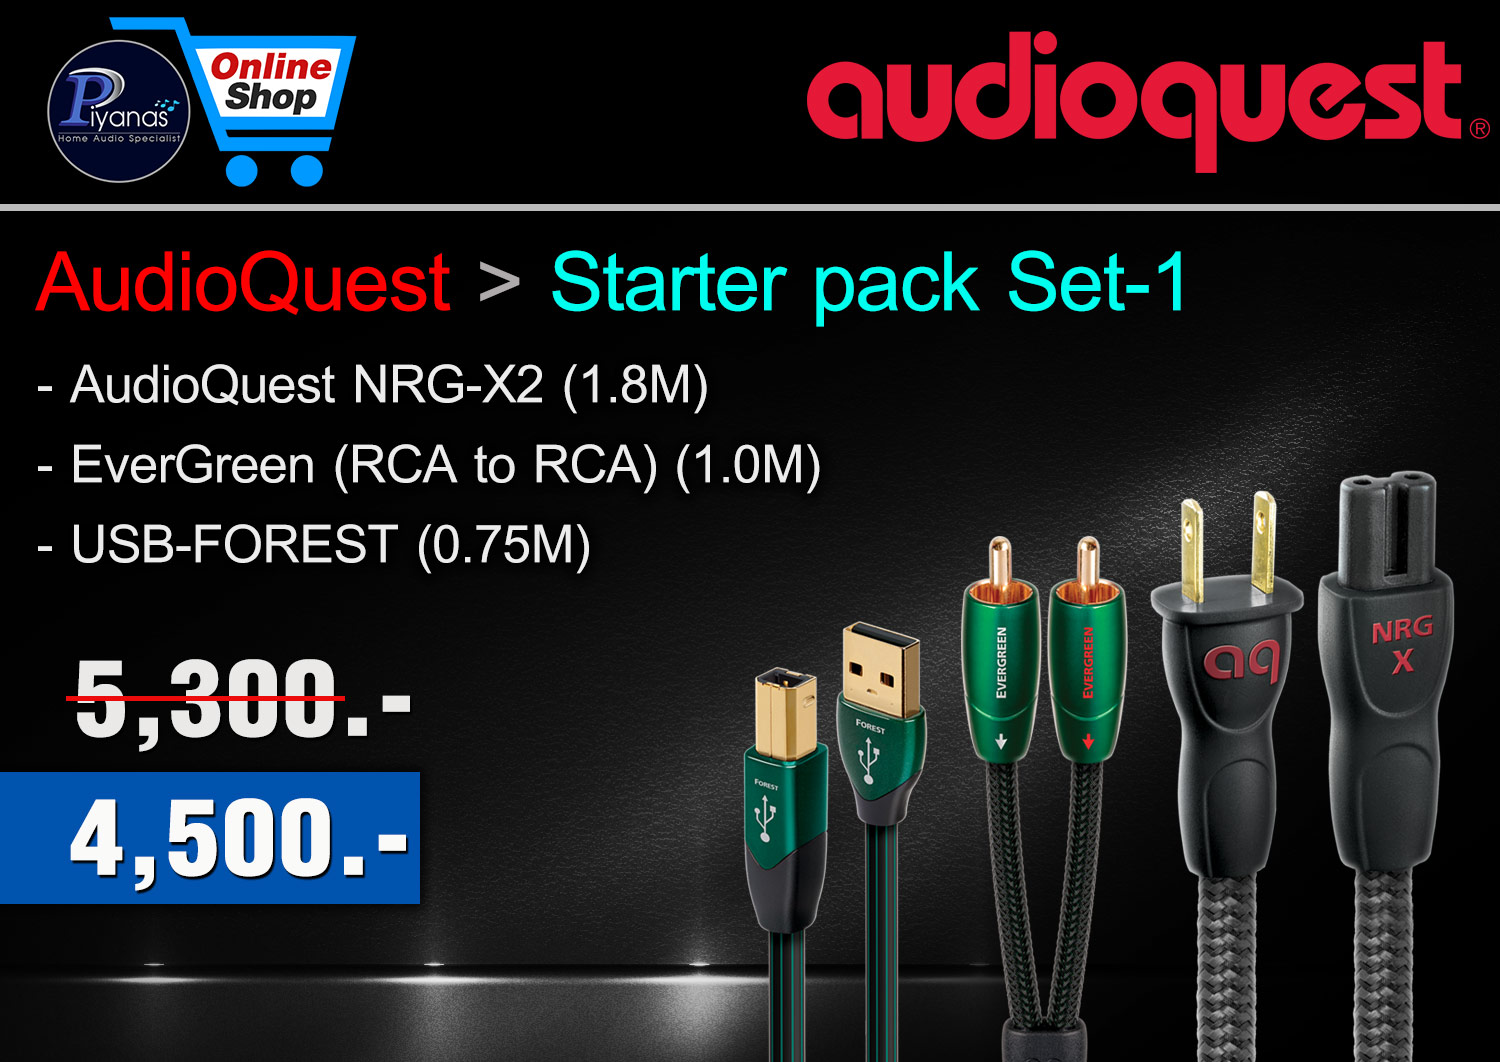 AudioQuest Starter pack set 1